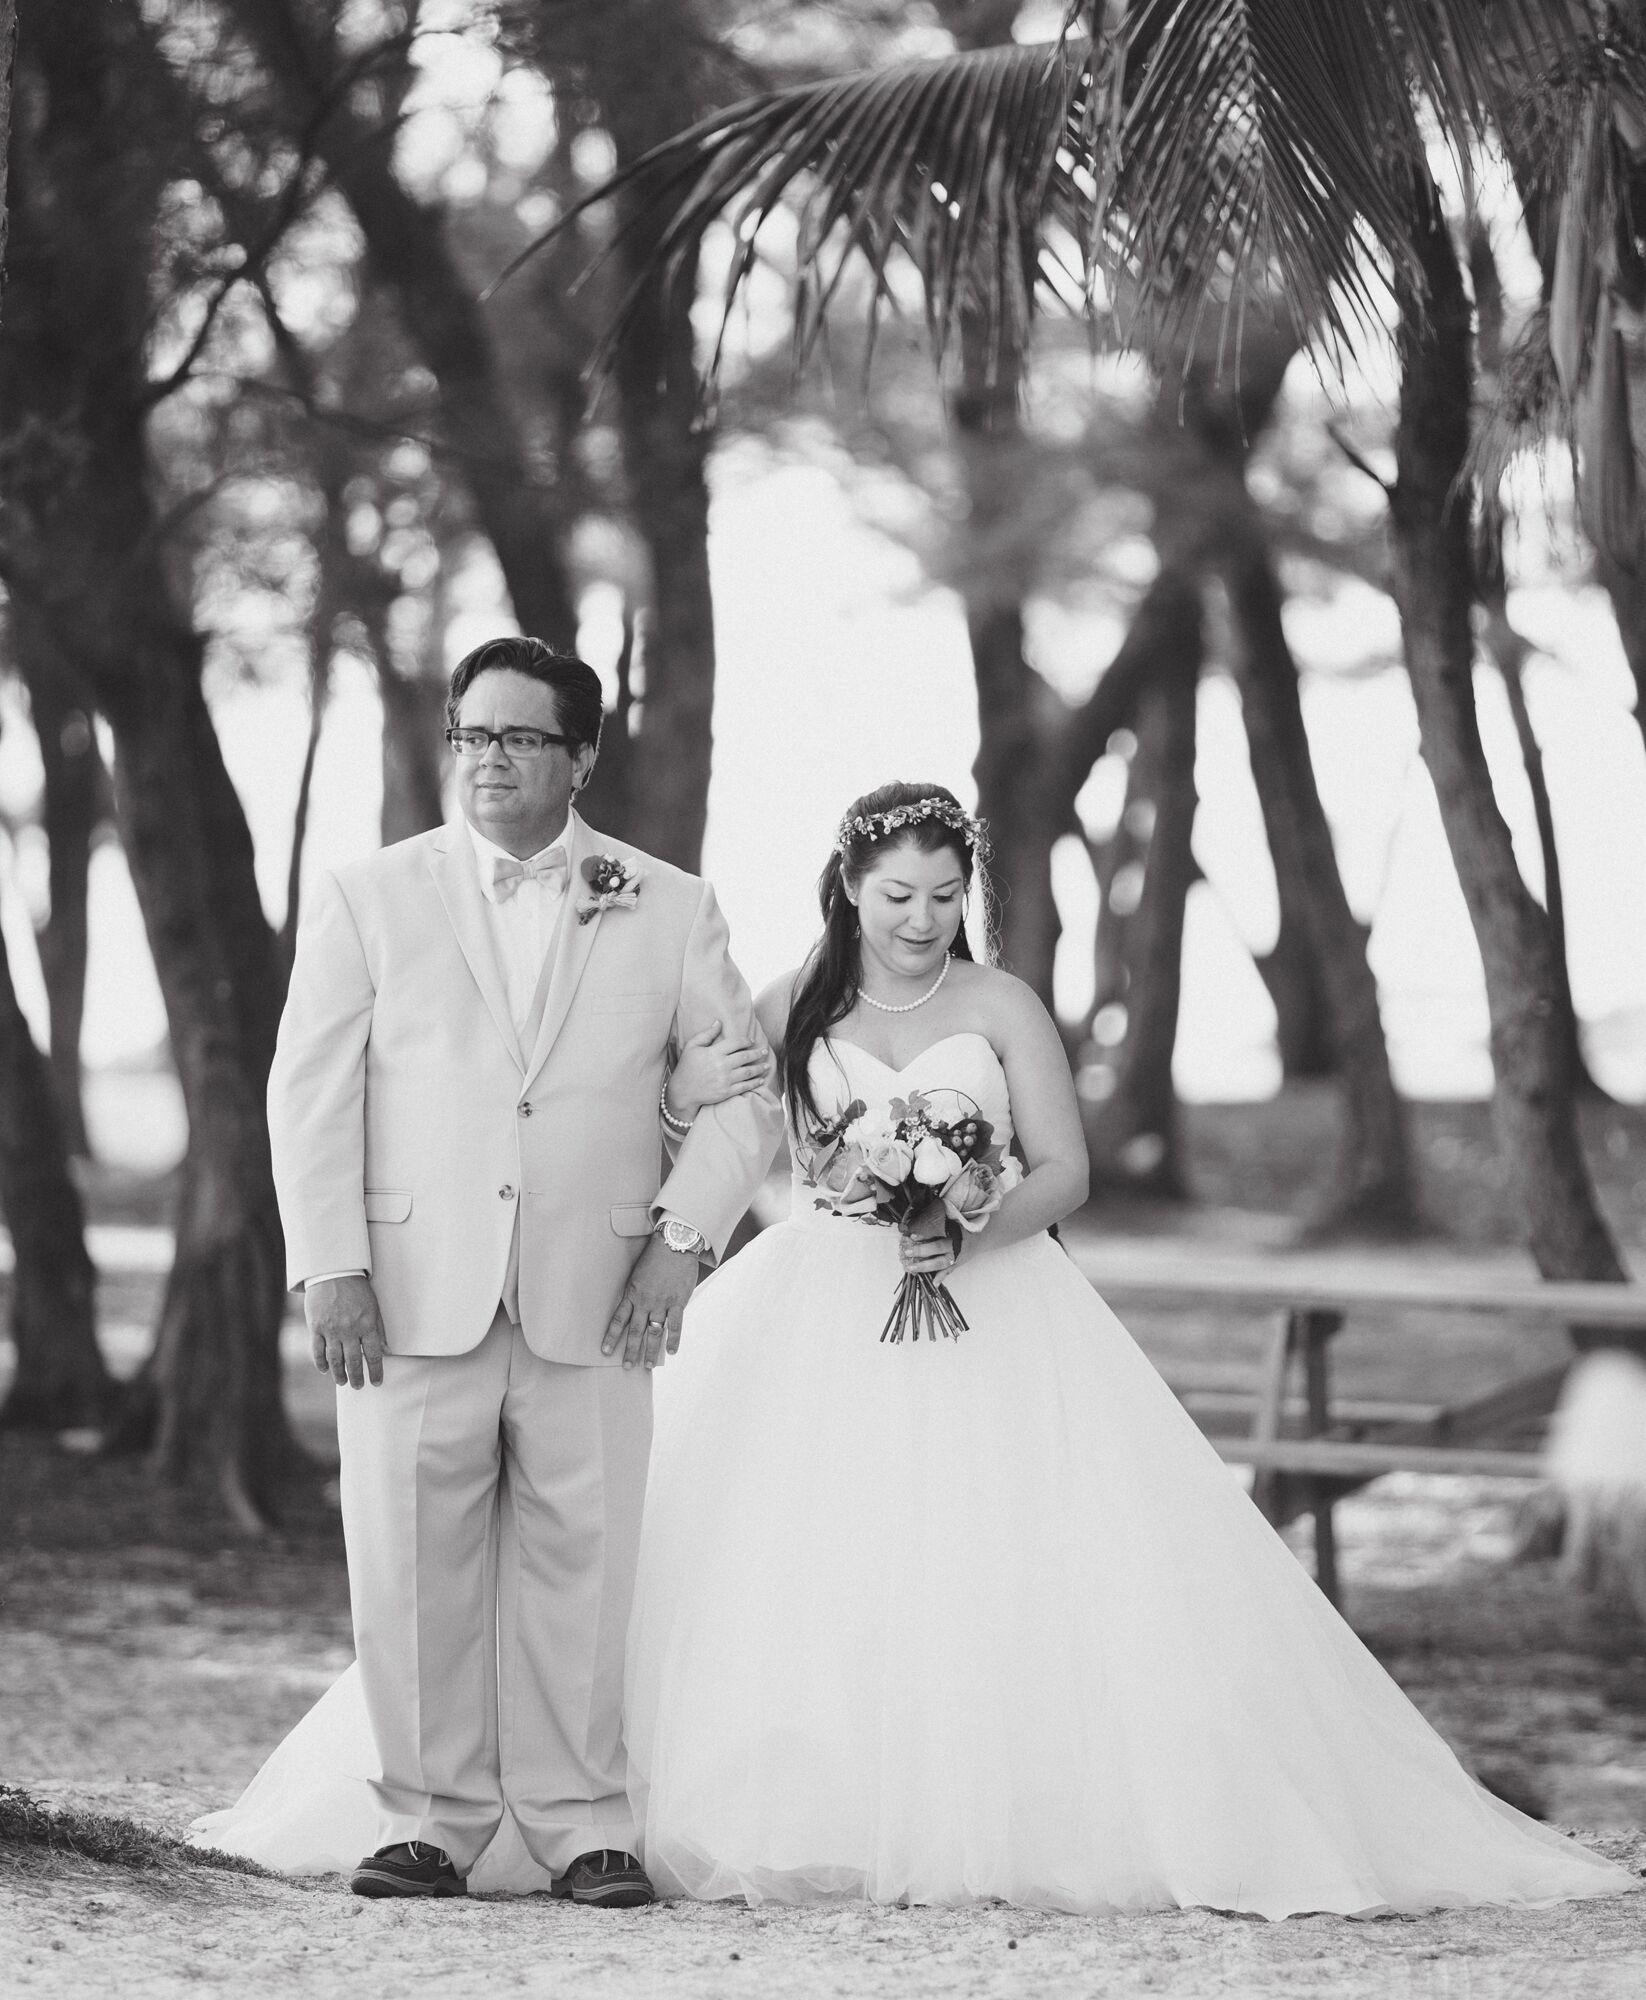 Key West Wedding Ideas: Father Escorts Bride For Processional On The Beaches Of